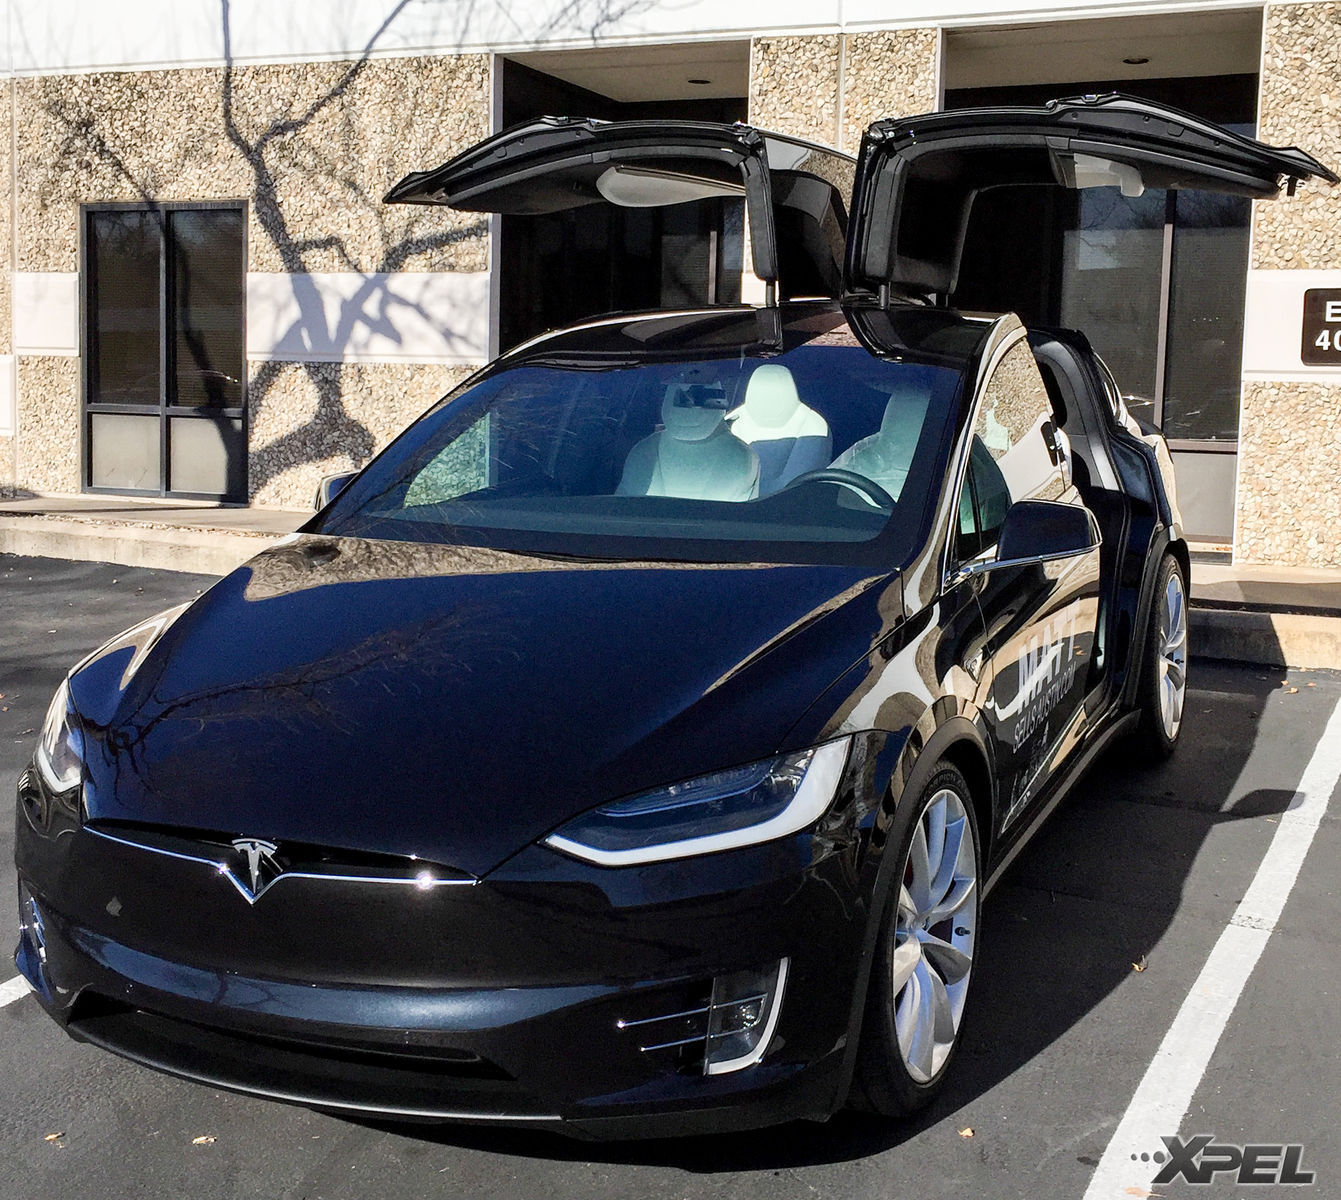 2016 Tesla Model X | Tesla Model X at XPEL Austin for XPEL ULTIMATE clear bra